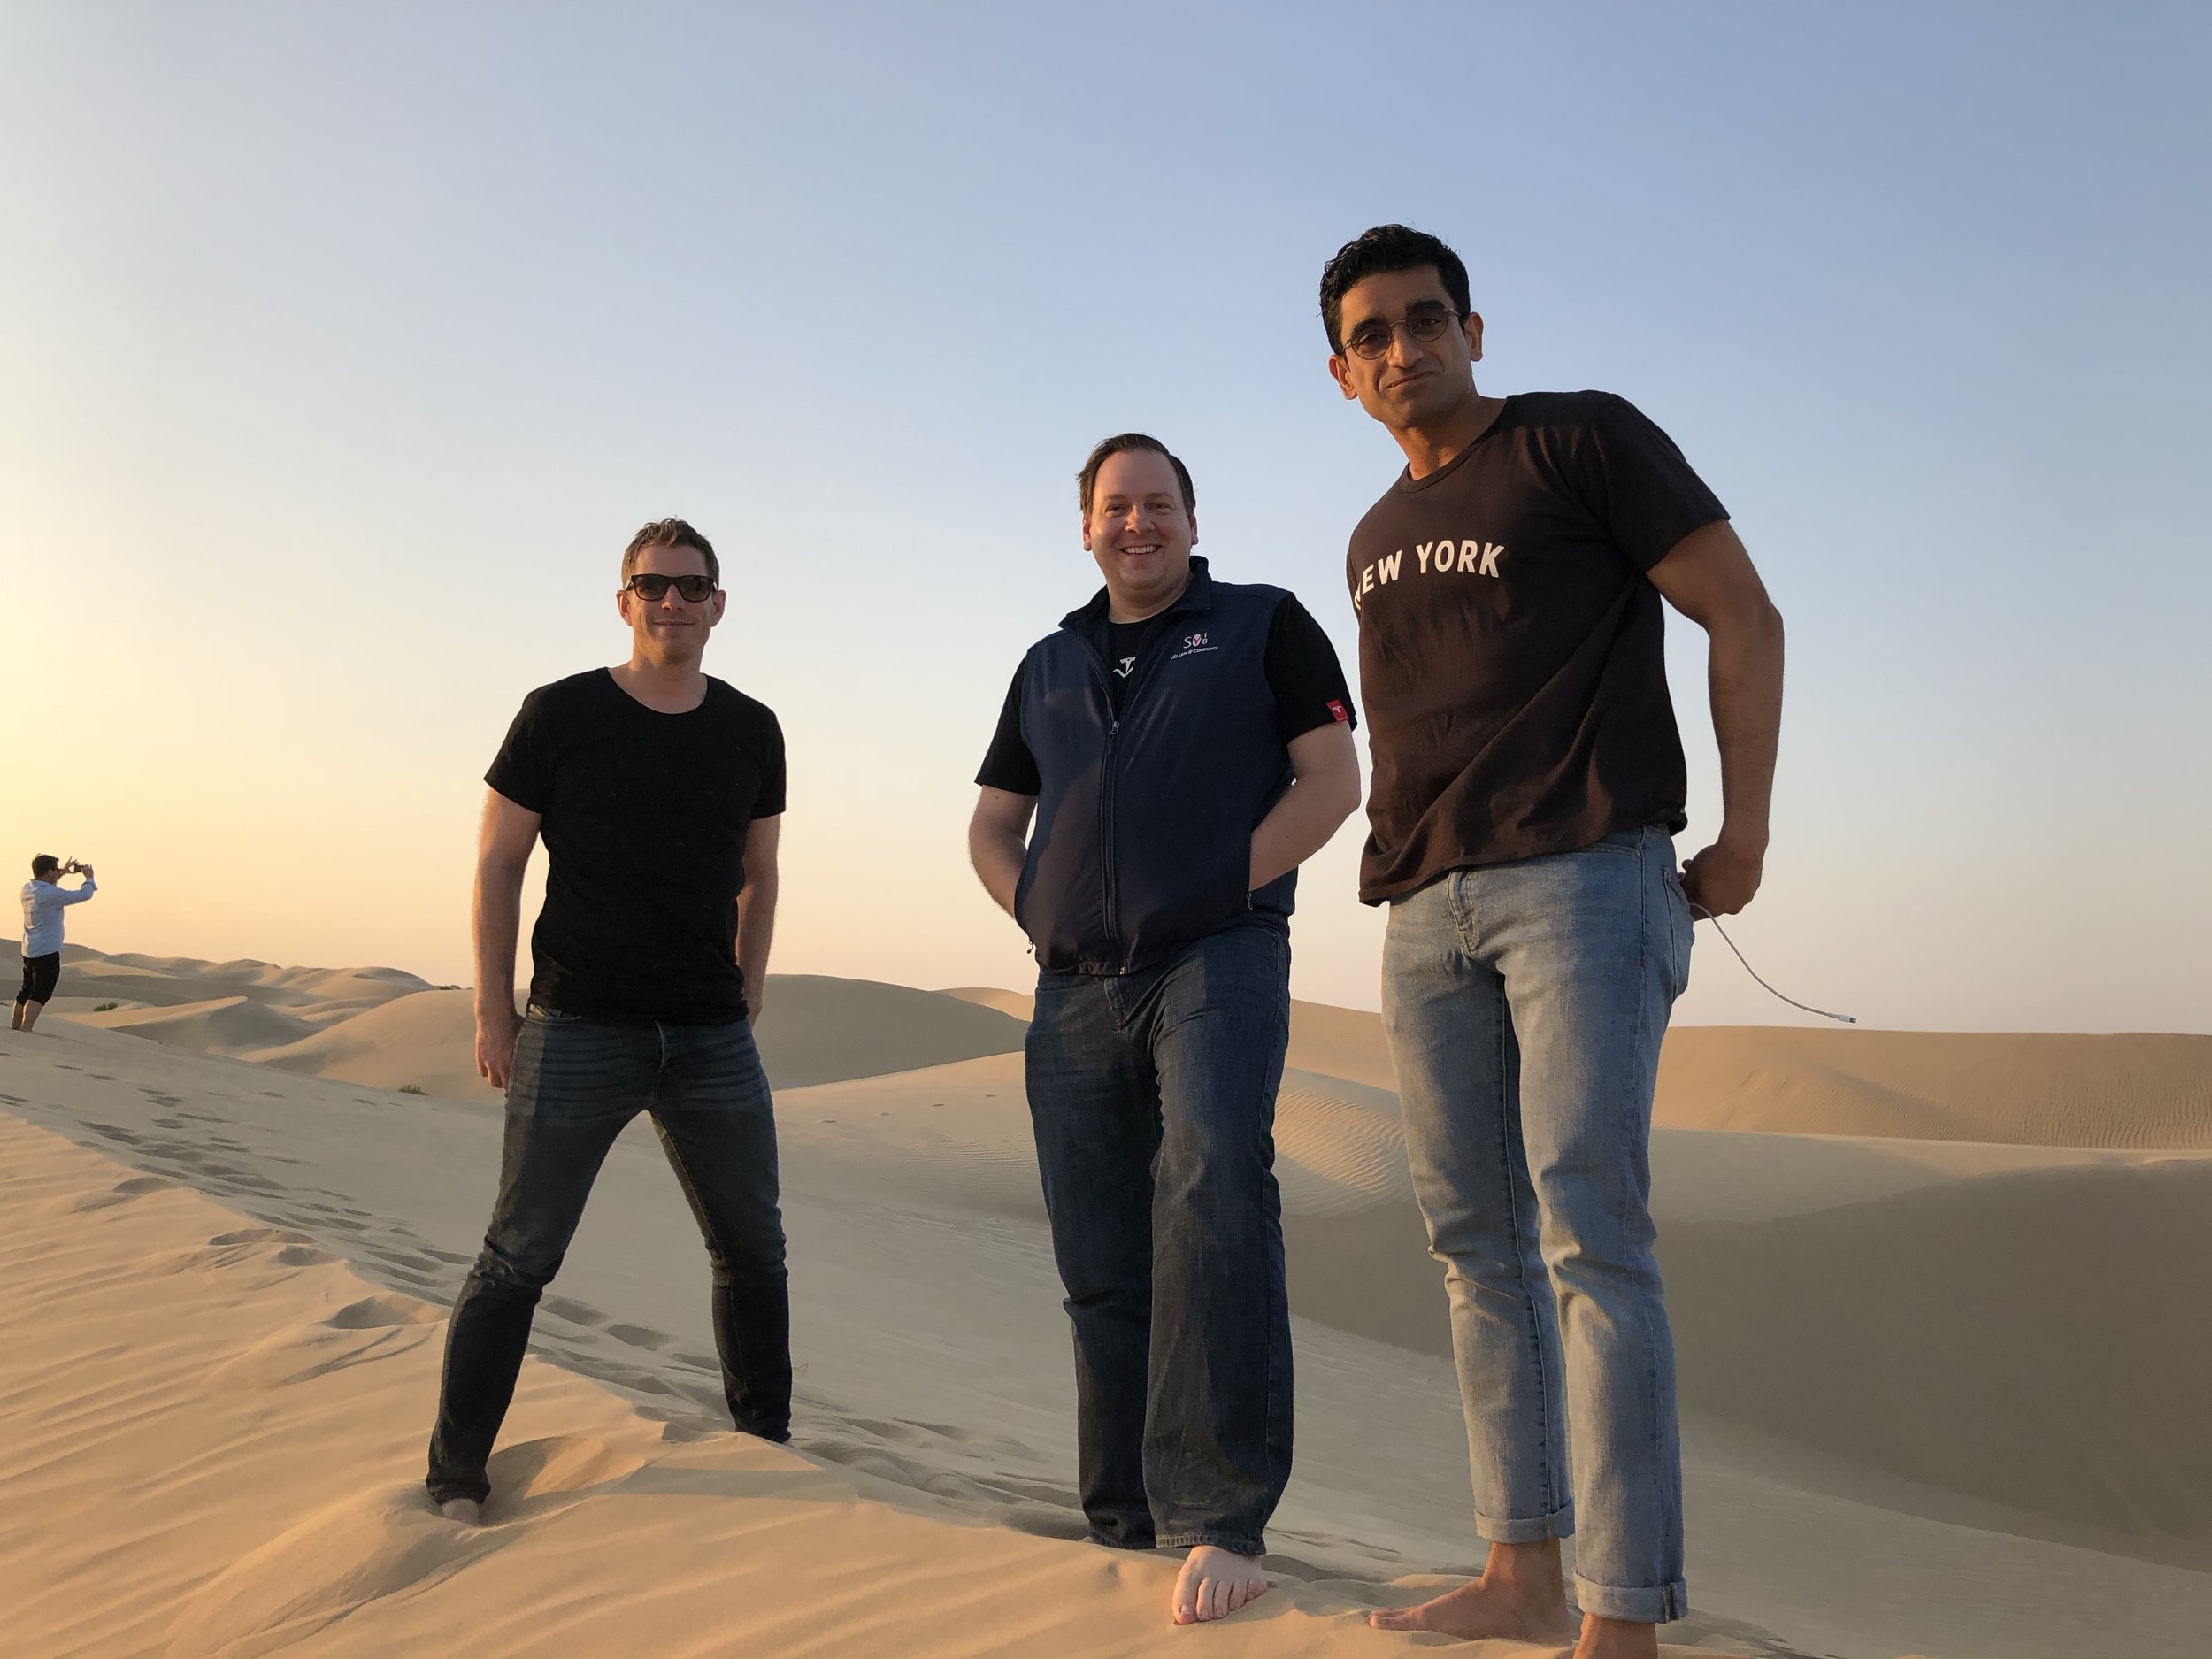 (L to R) Sean Gourley of Primer, Chris Gibson of Recursion, and Zavain Dar in Abu Dhabi